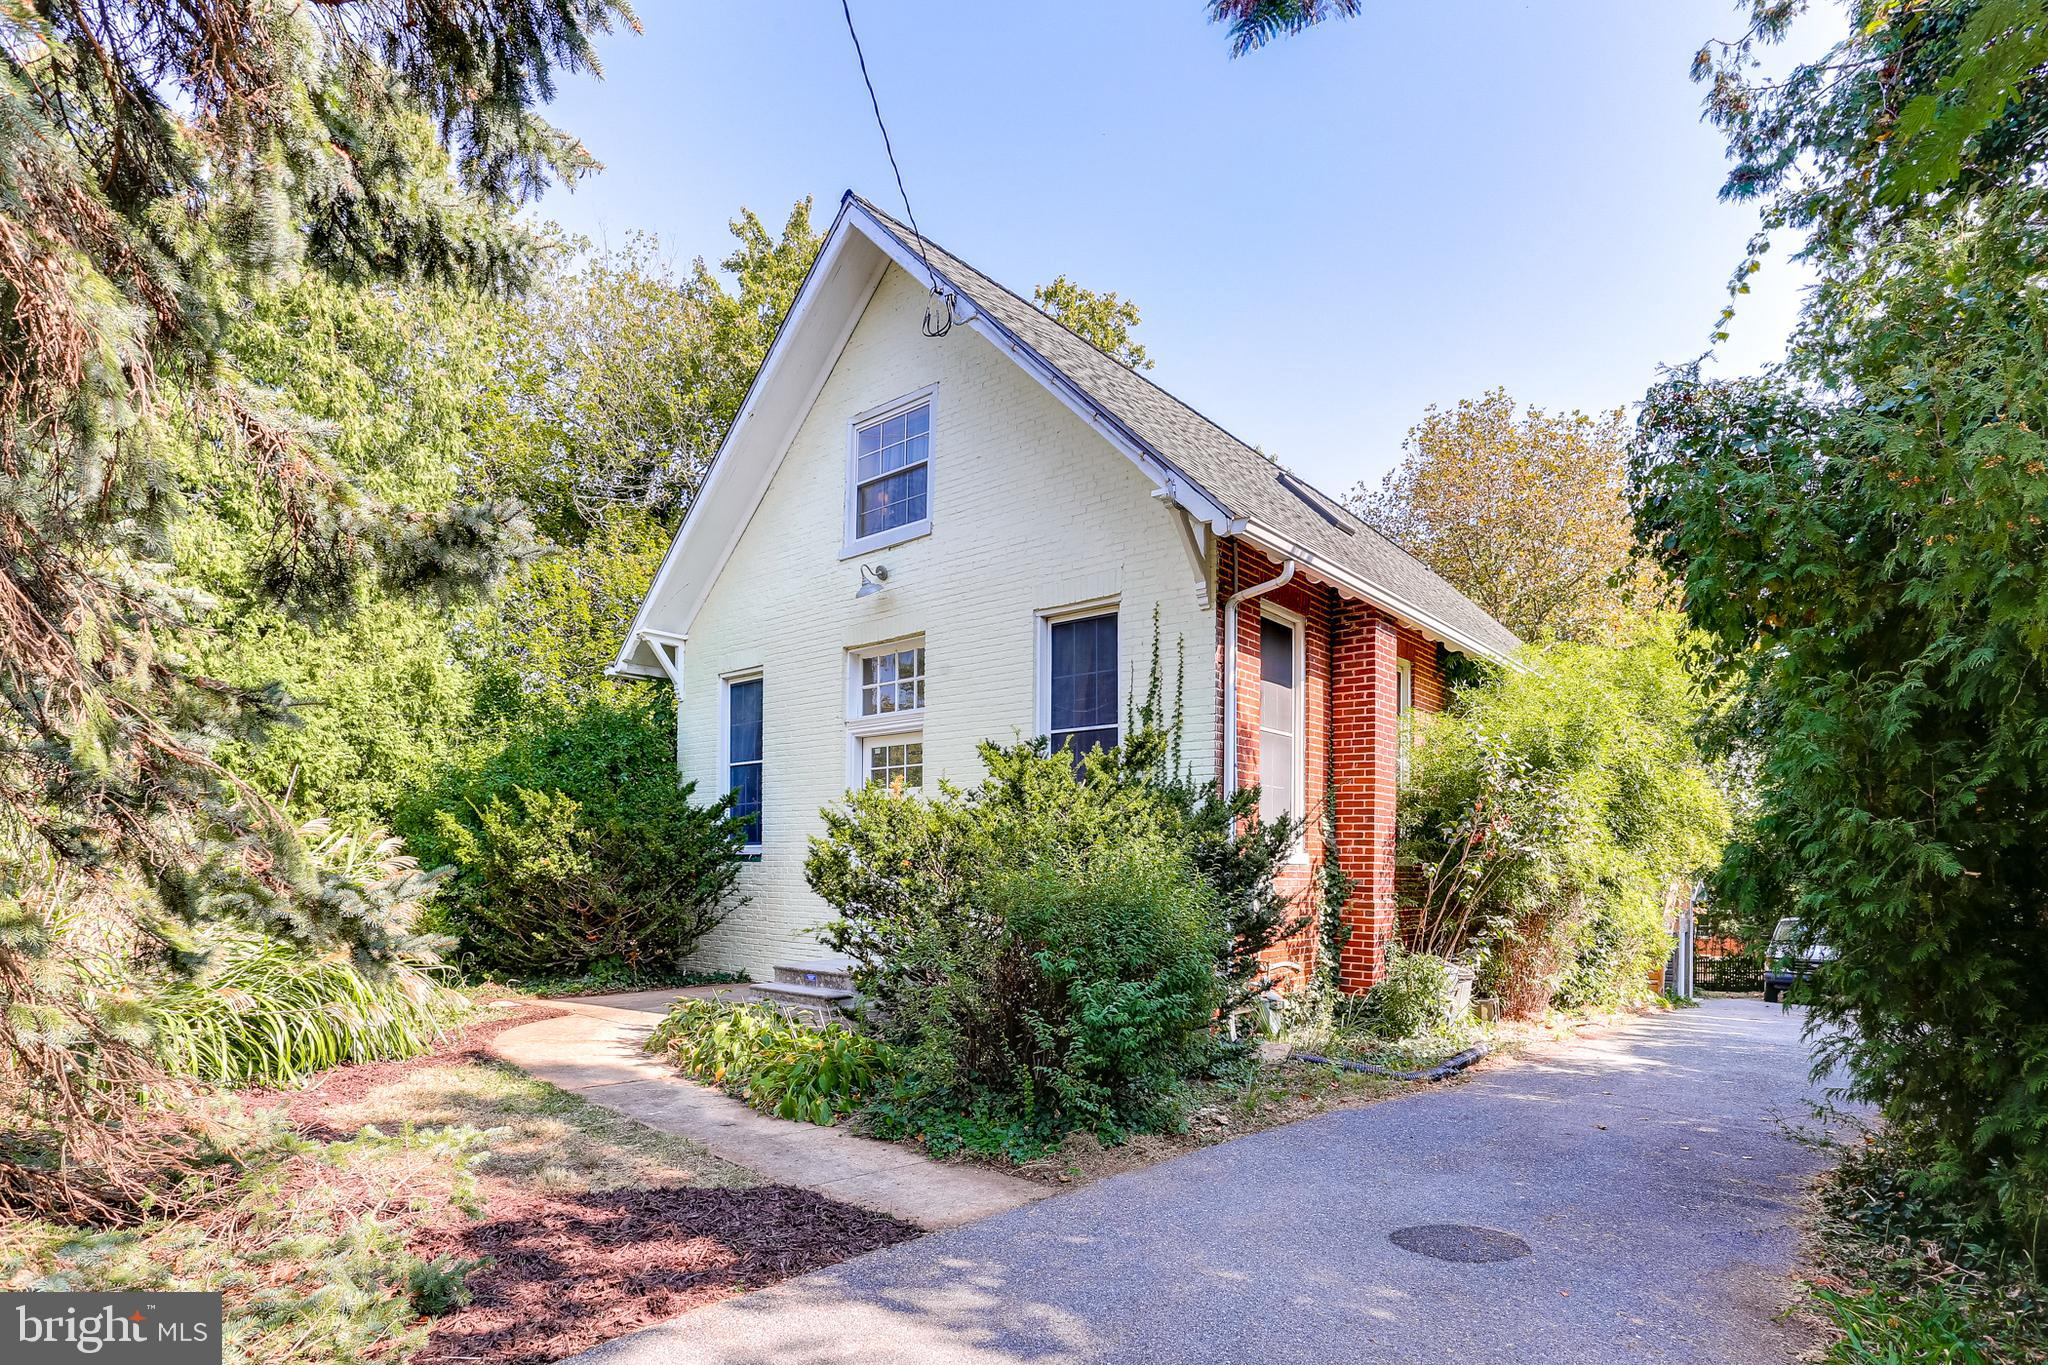 2007 OLD FREDERICK ROAD, CATONSVILLE, MD 21228